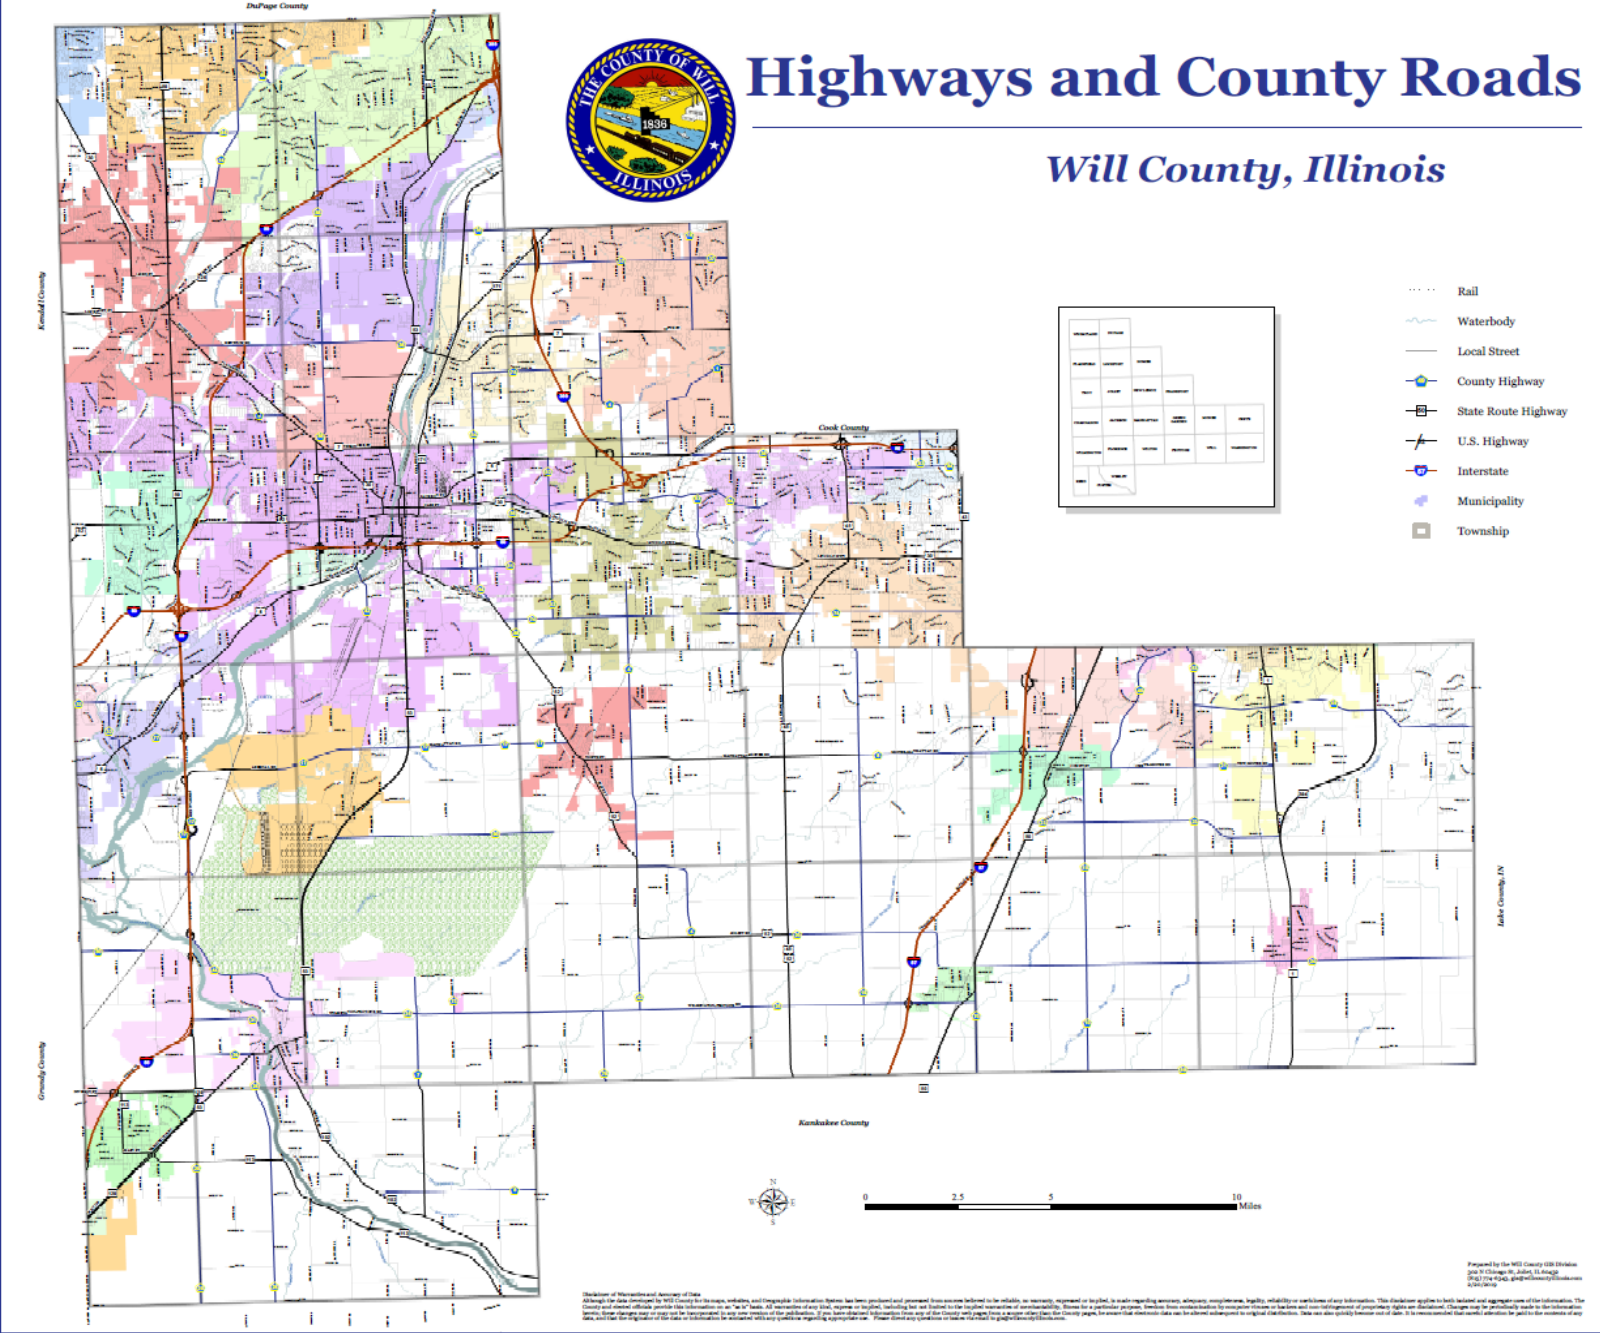 Will County Illinois Highways & County Roads map